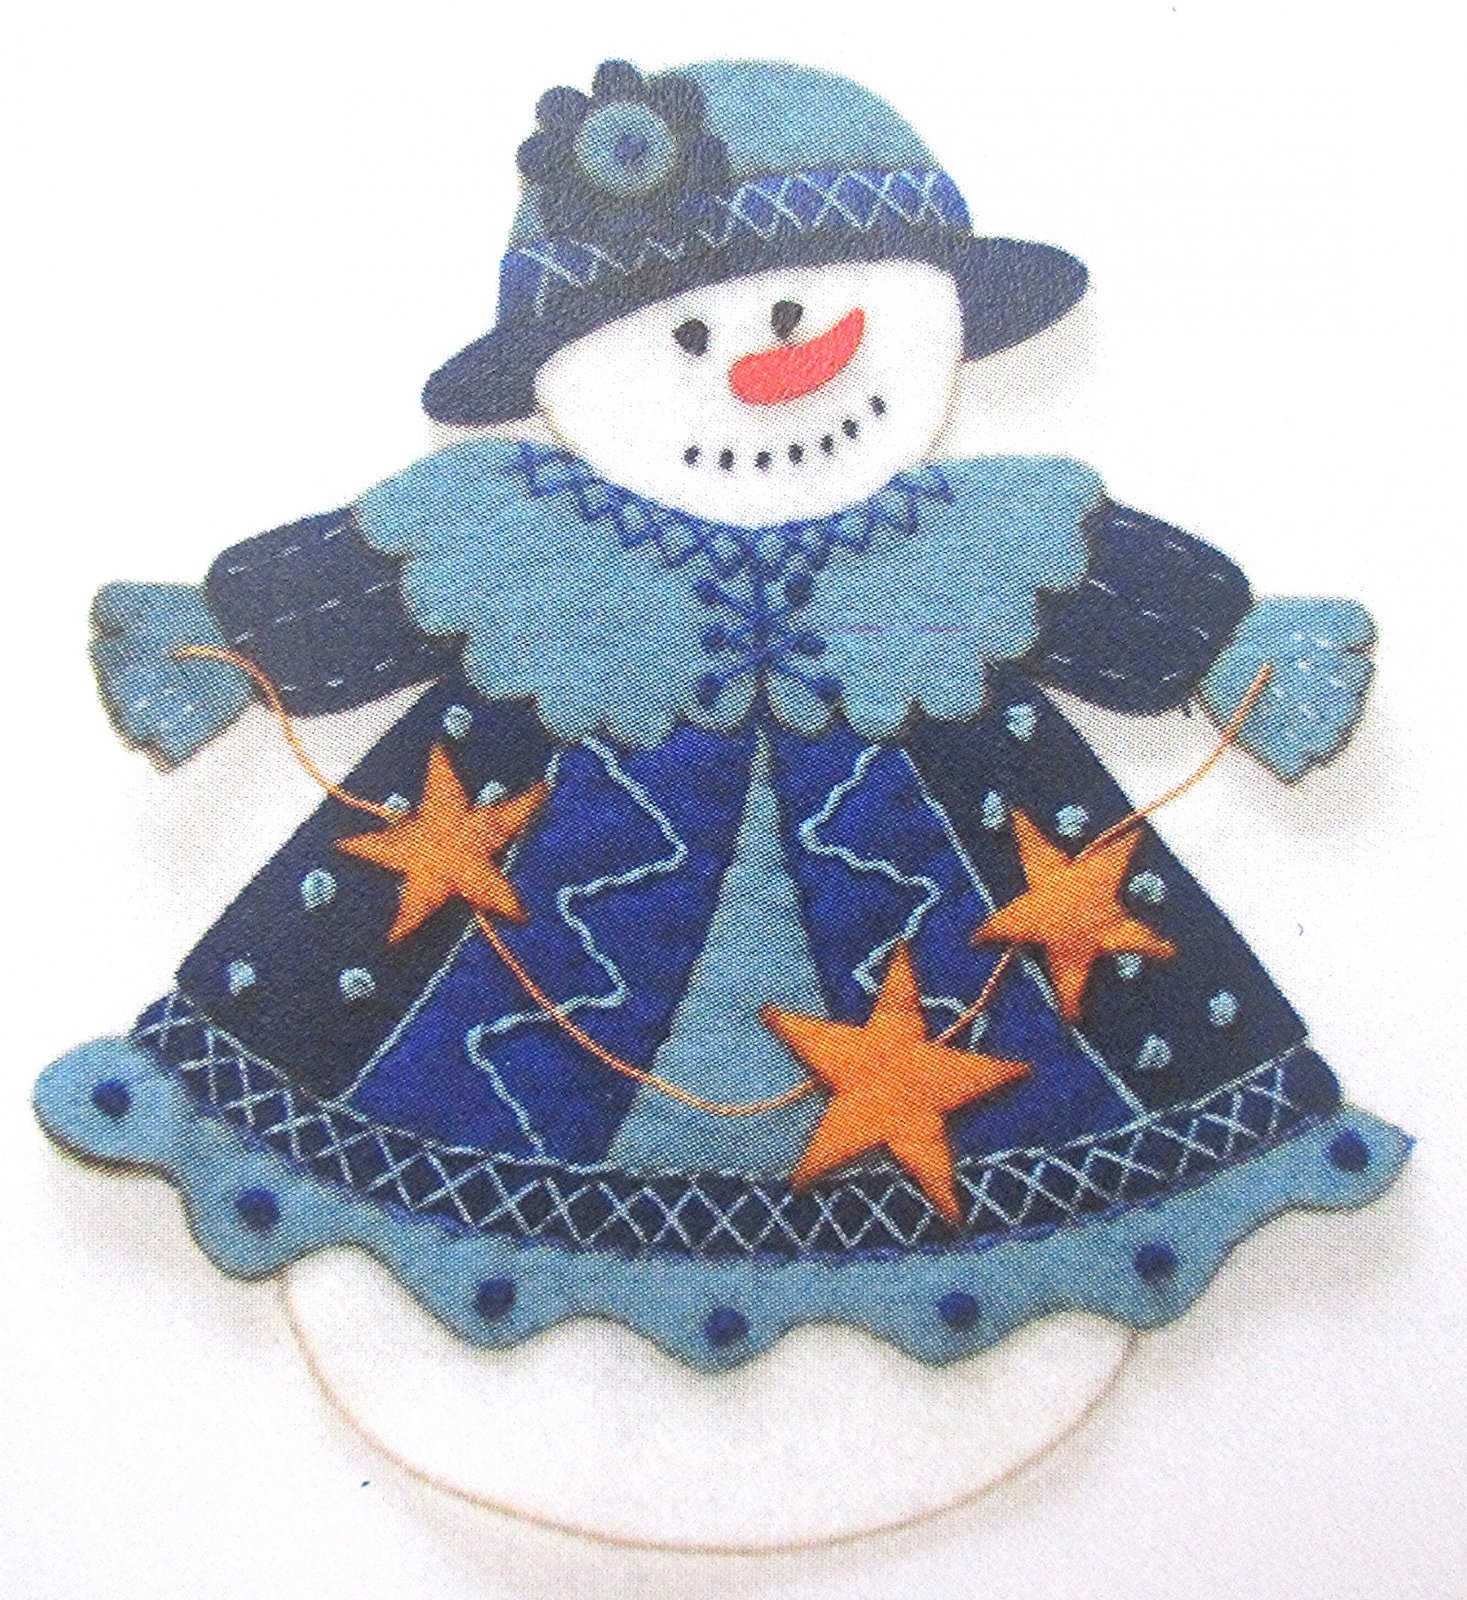 Artsi2 Fiona Snowlady Ornament Kit 6.75 x 6